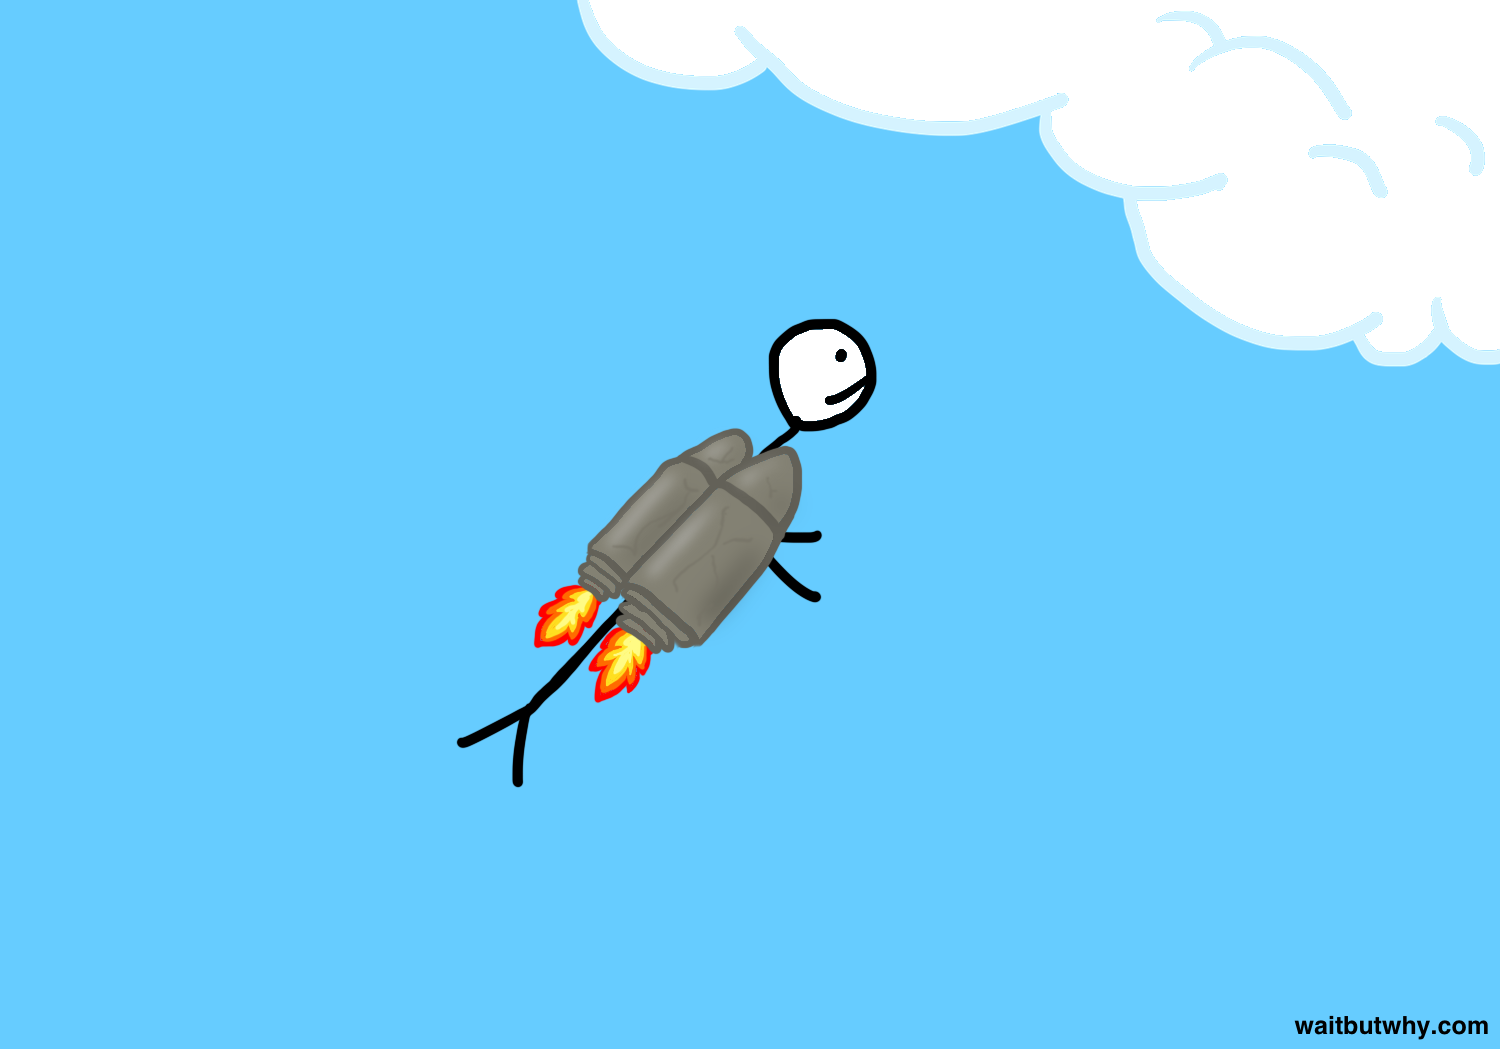 stick figuring rocketing through sky with jet pack made of clay